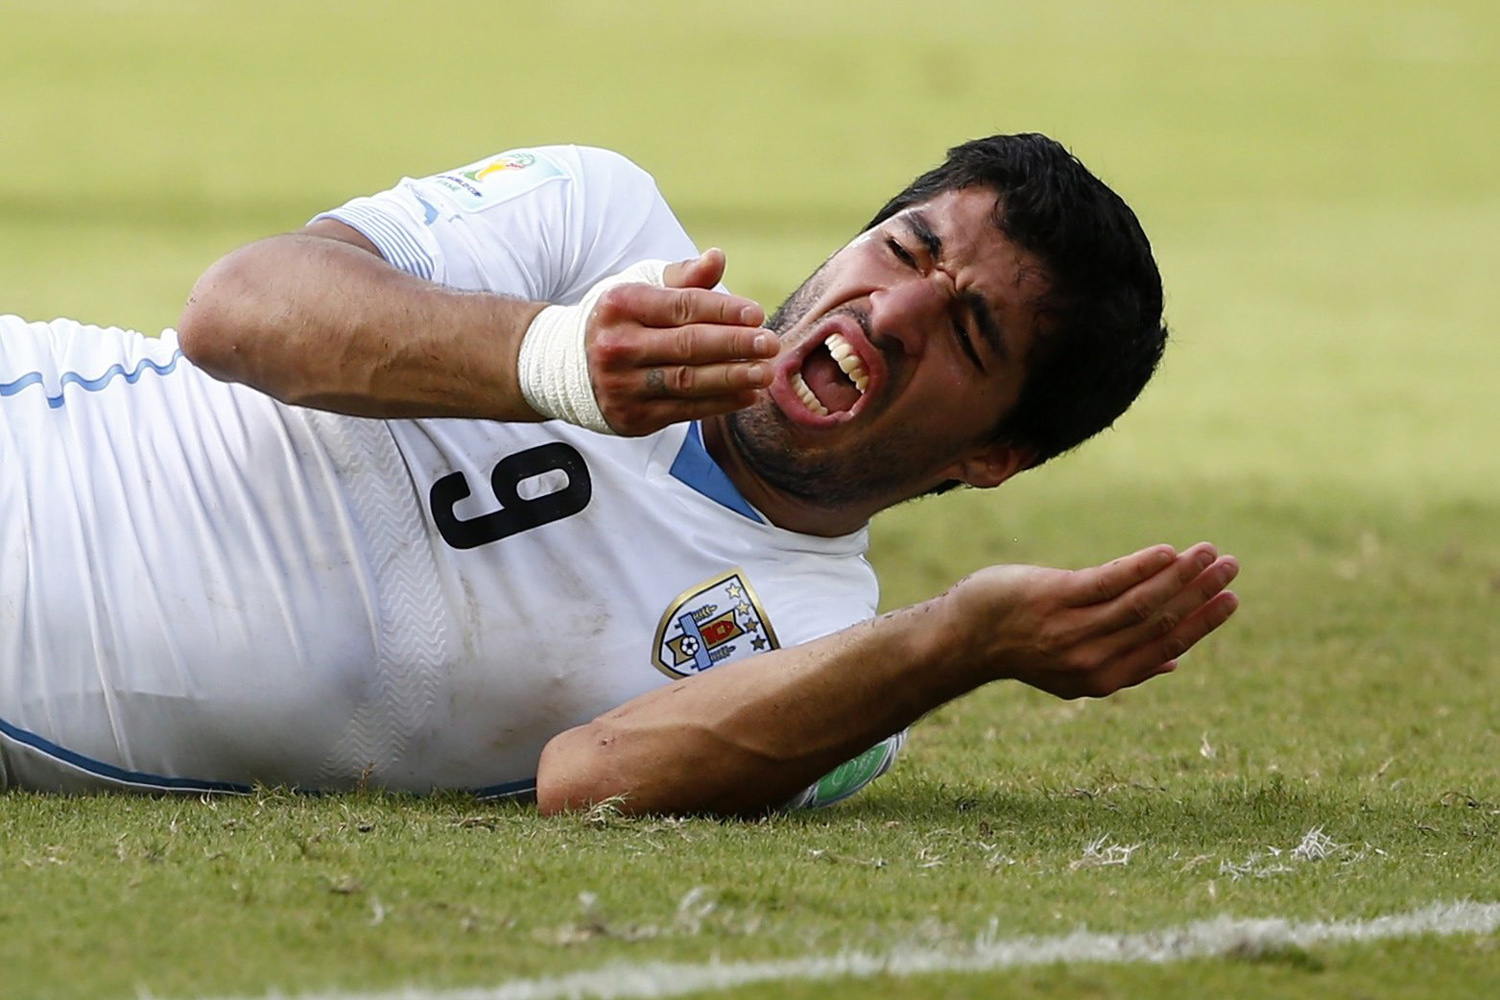 June 24, 2014. Uruguay's Luis Suarez reacts after clashing with Italy's Giorgio Chiellini during their 2014 World Cup Group D soccer match at the Dunas arena in Natal, Brazil.